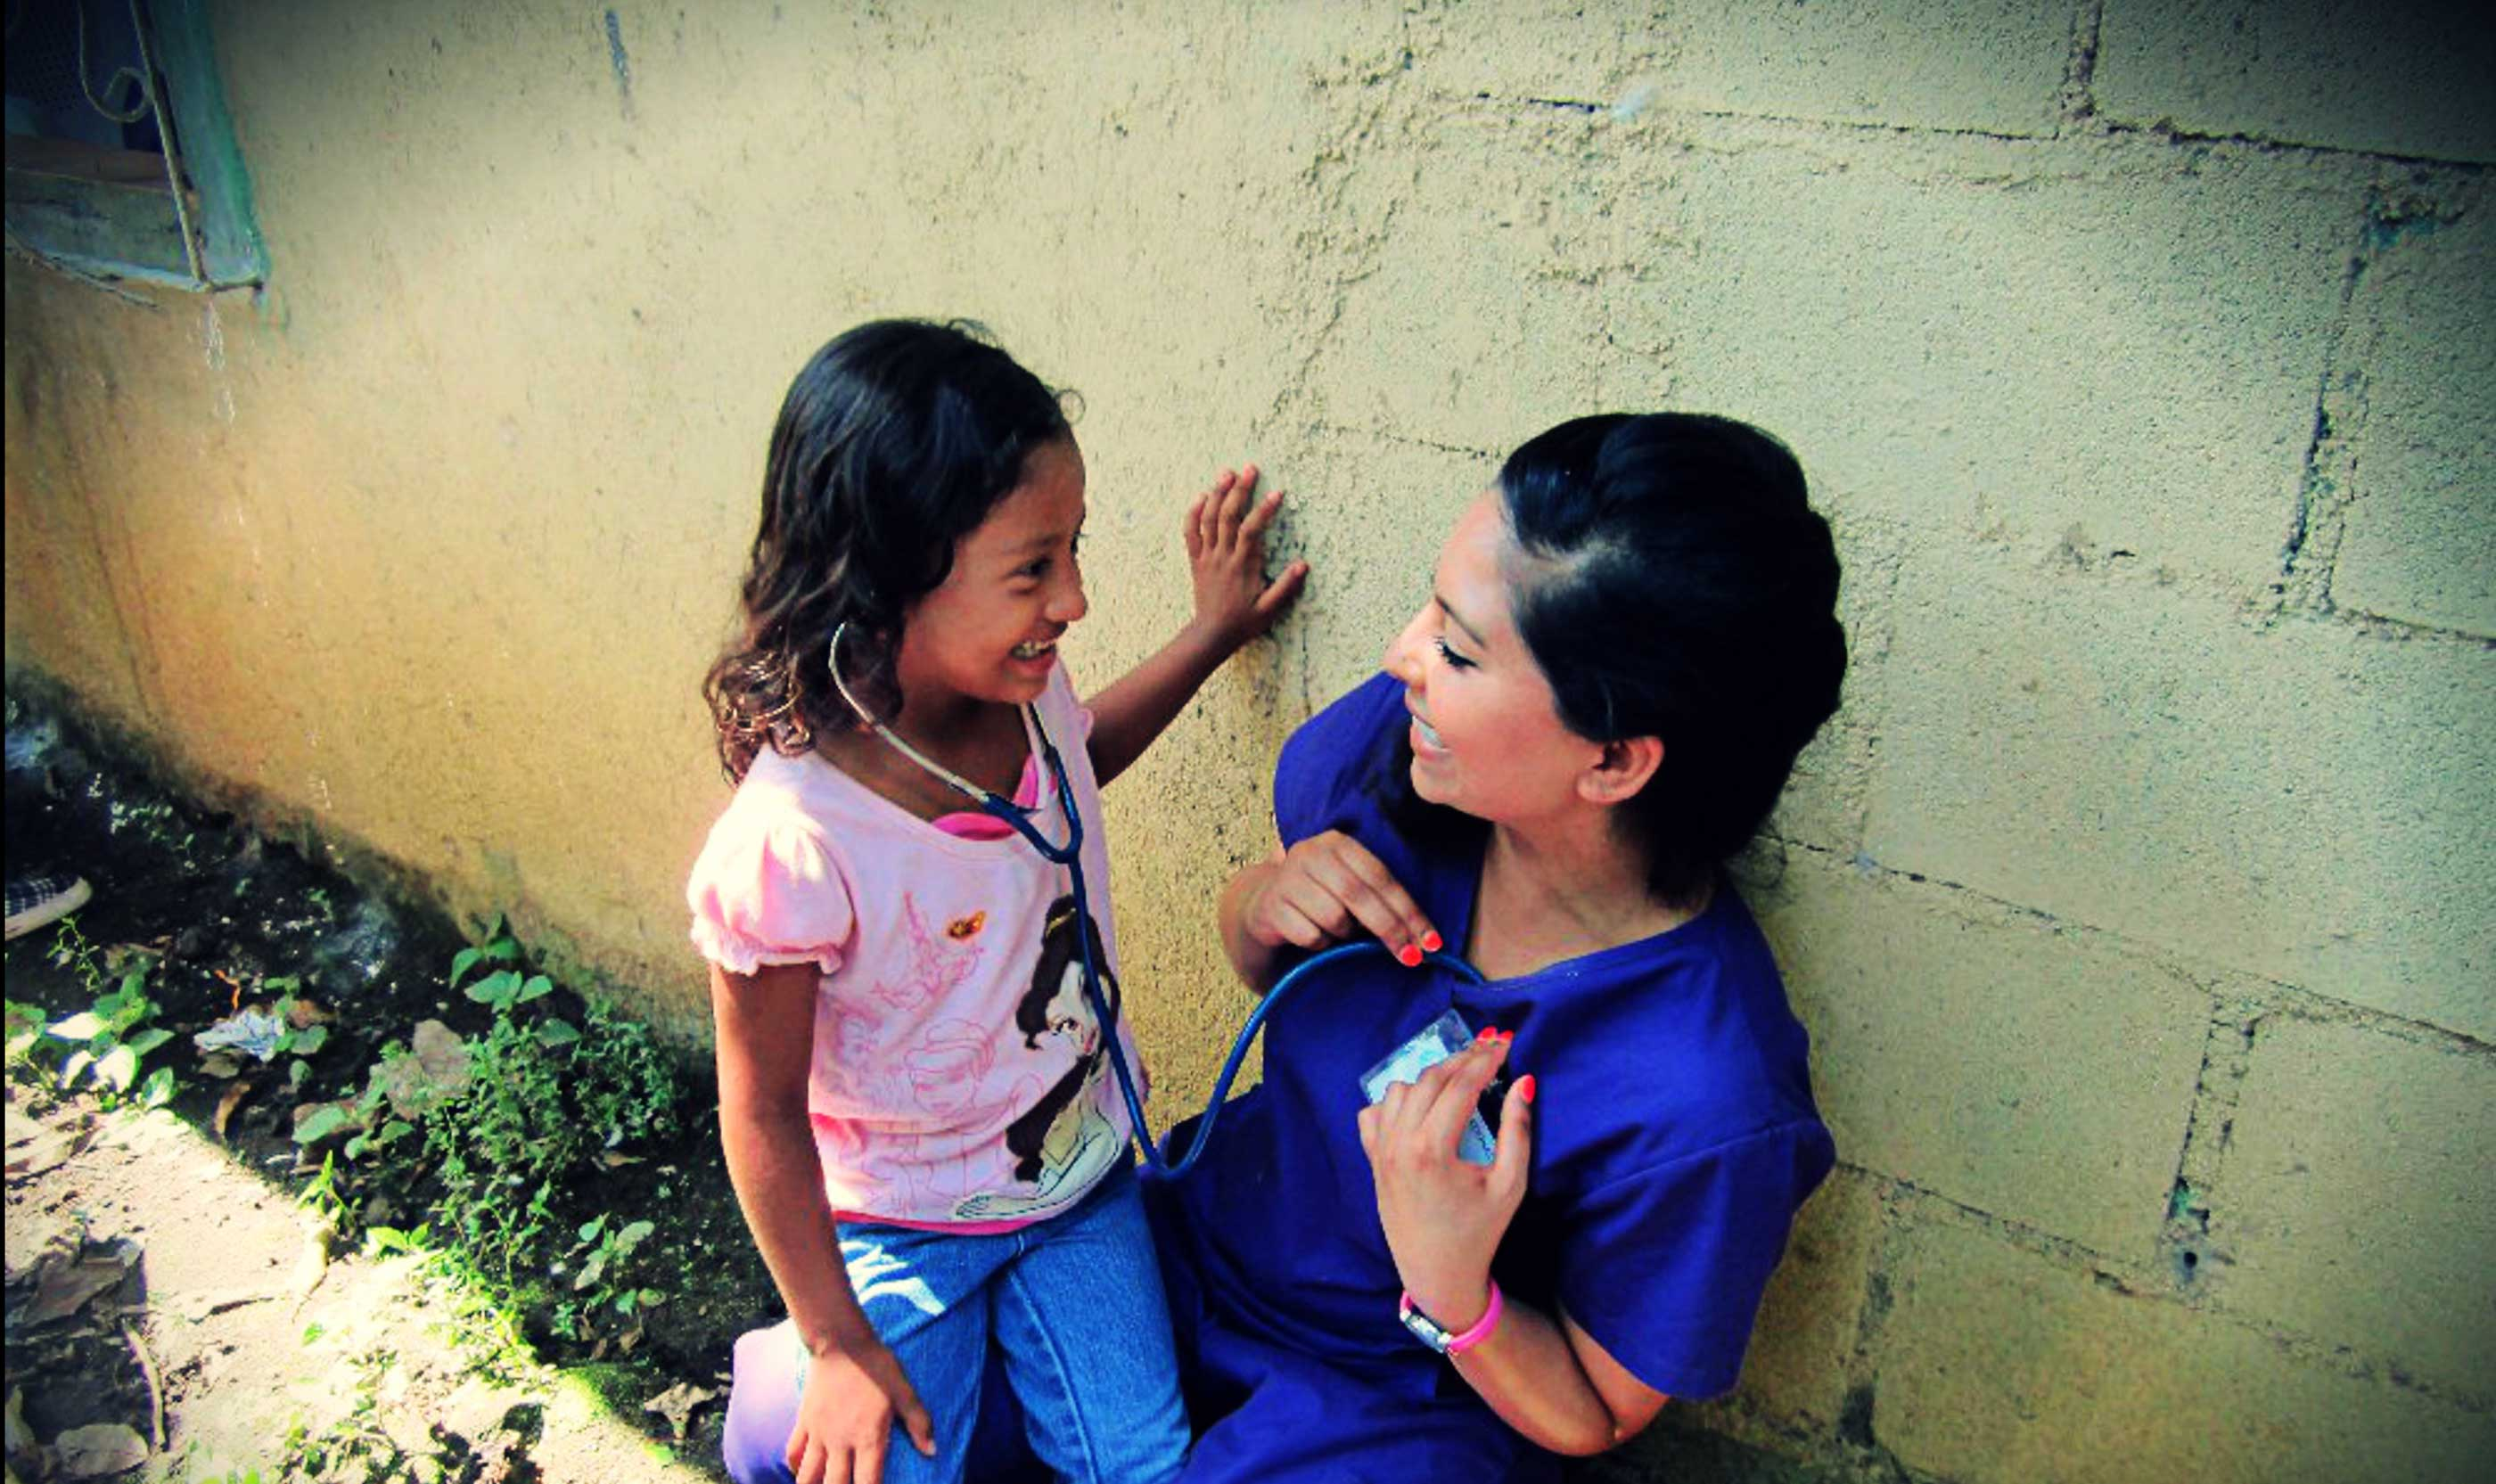 A volunteer shares her heartbeat via a stethoscope with a child.